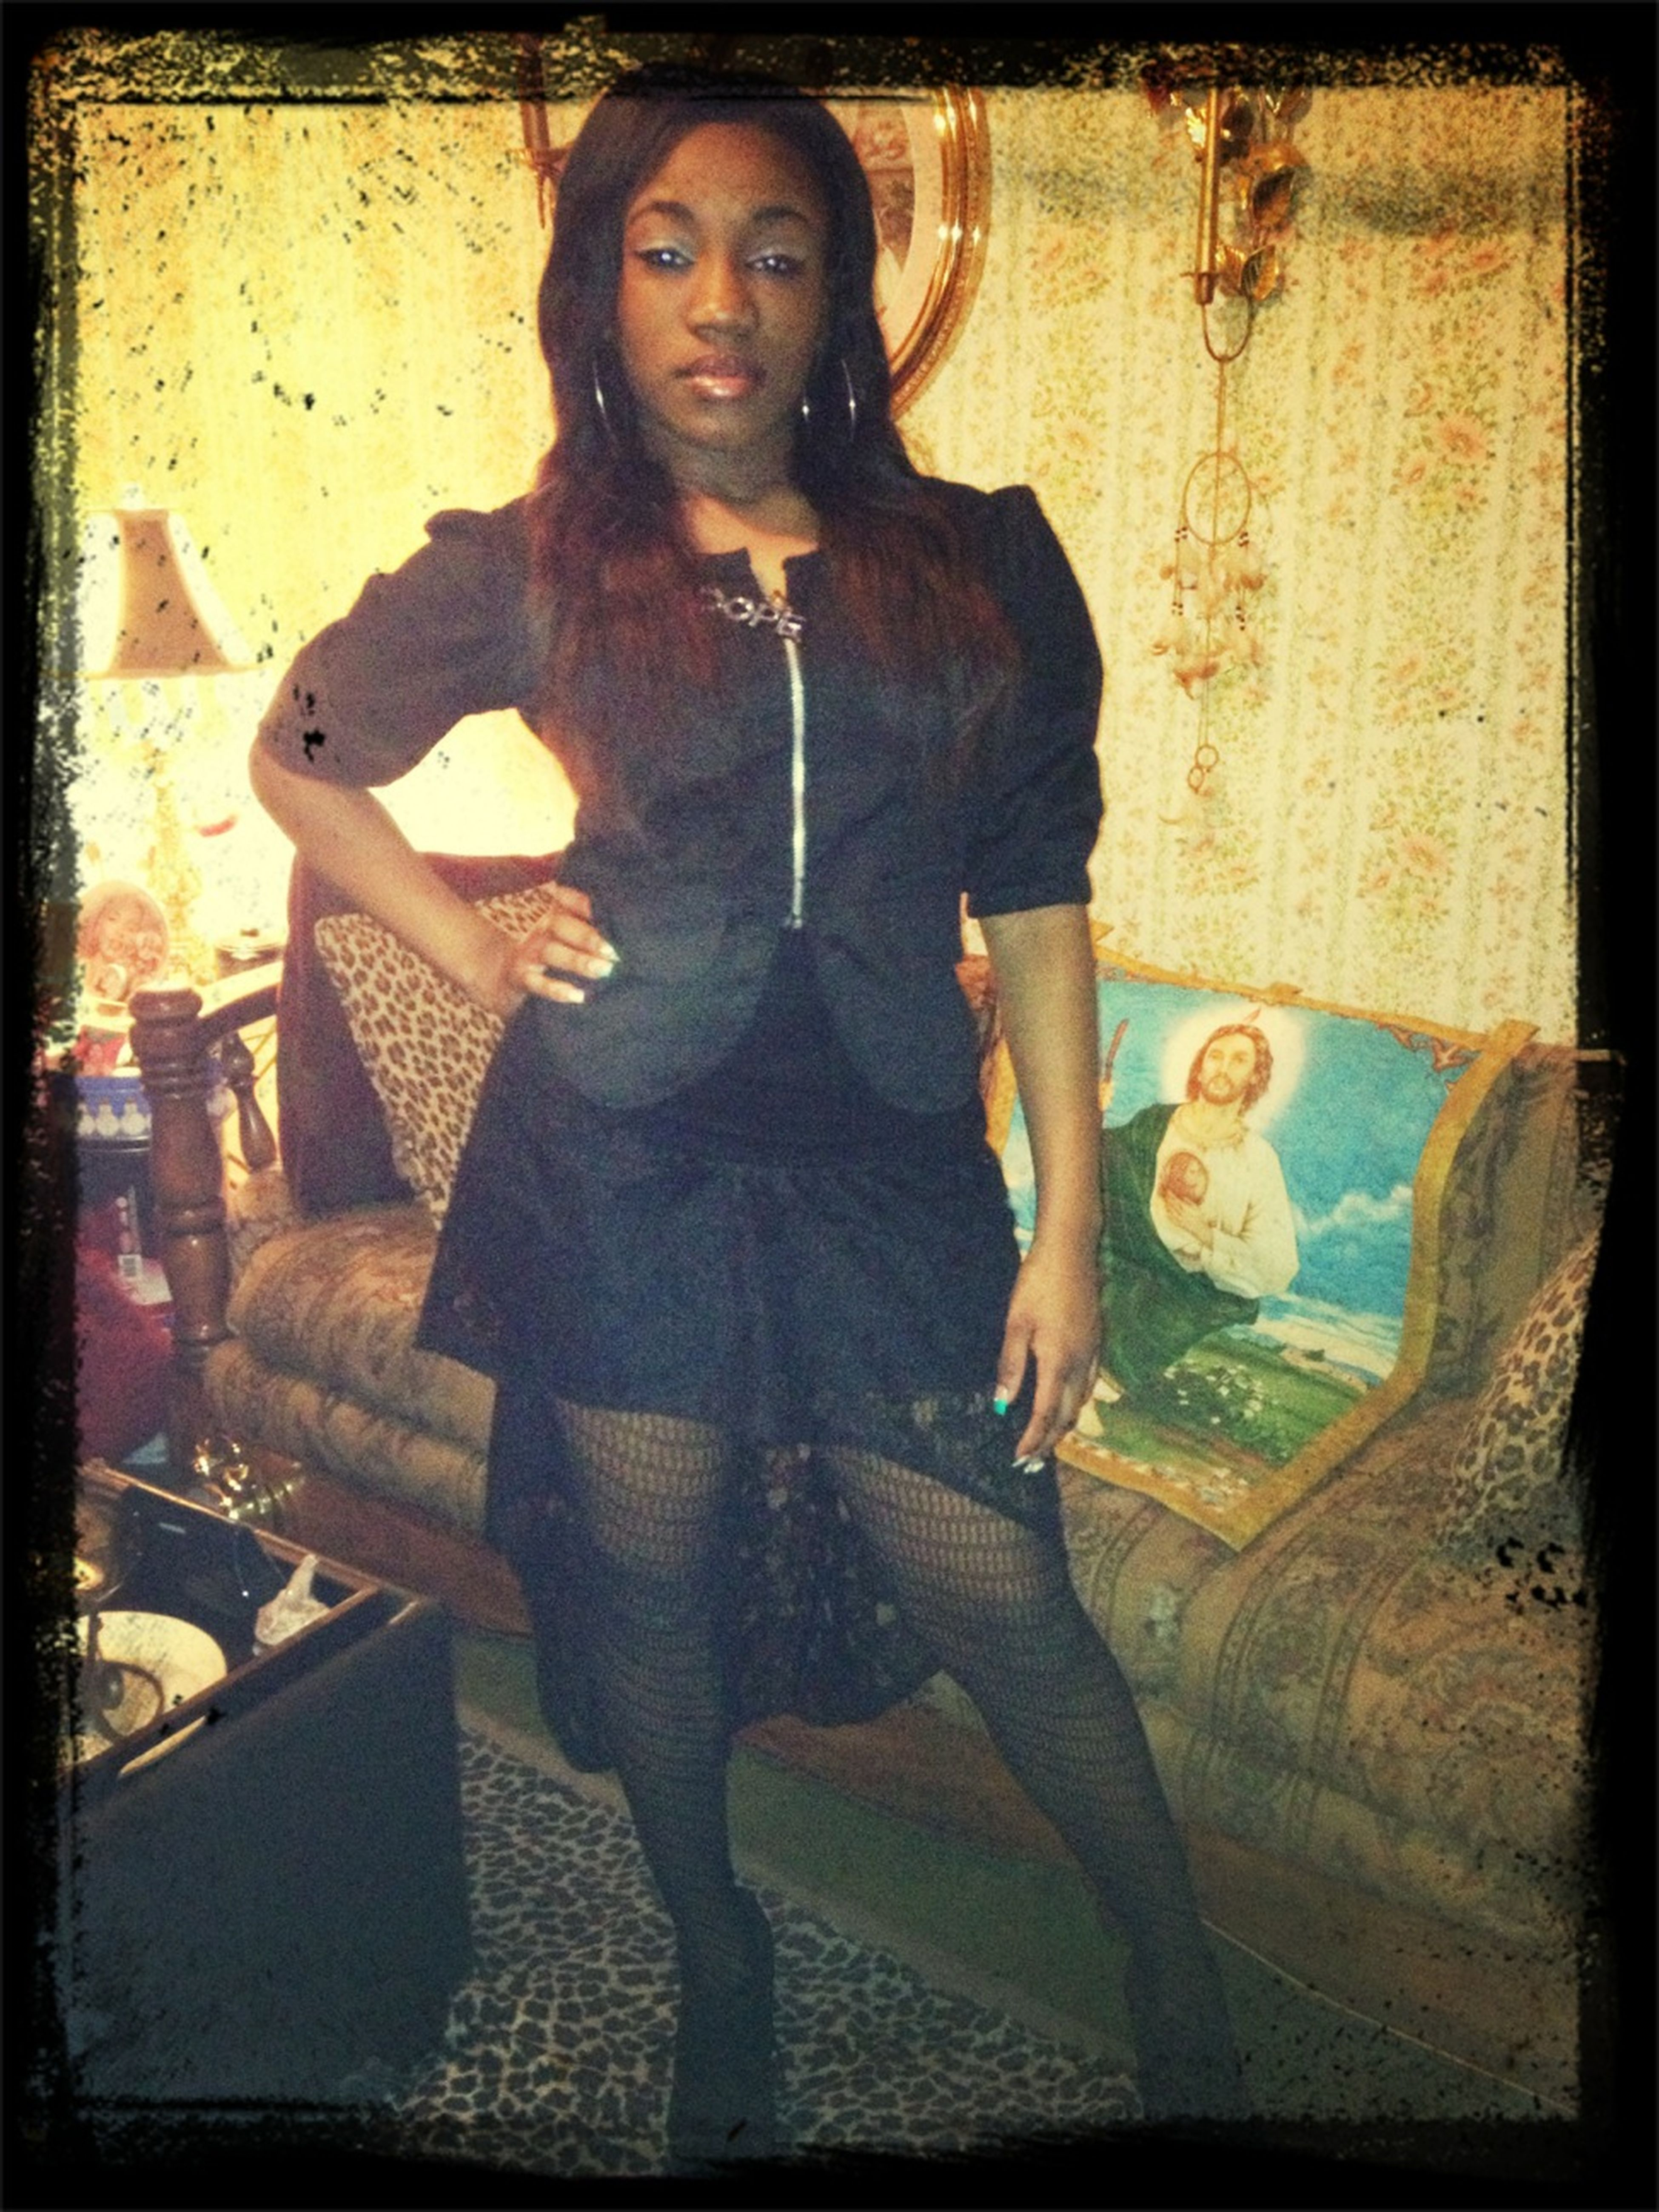 Yesterday Before #LLE #NSI #BLACKOUT